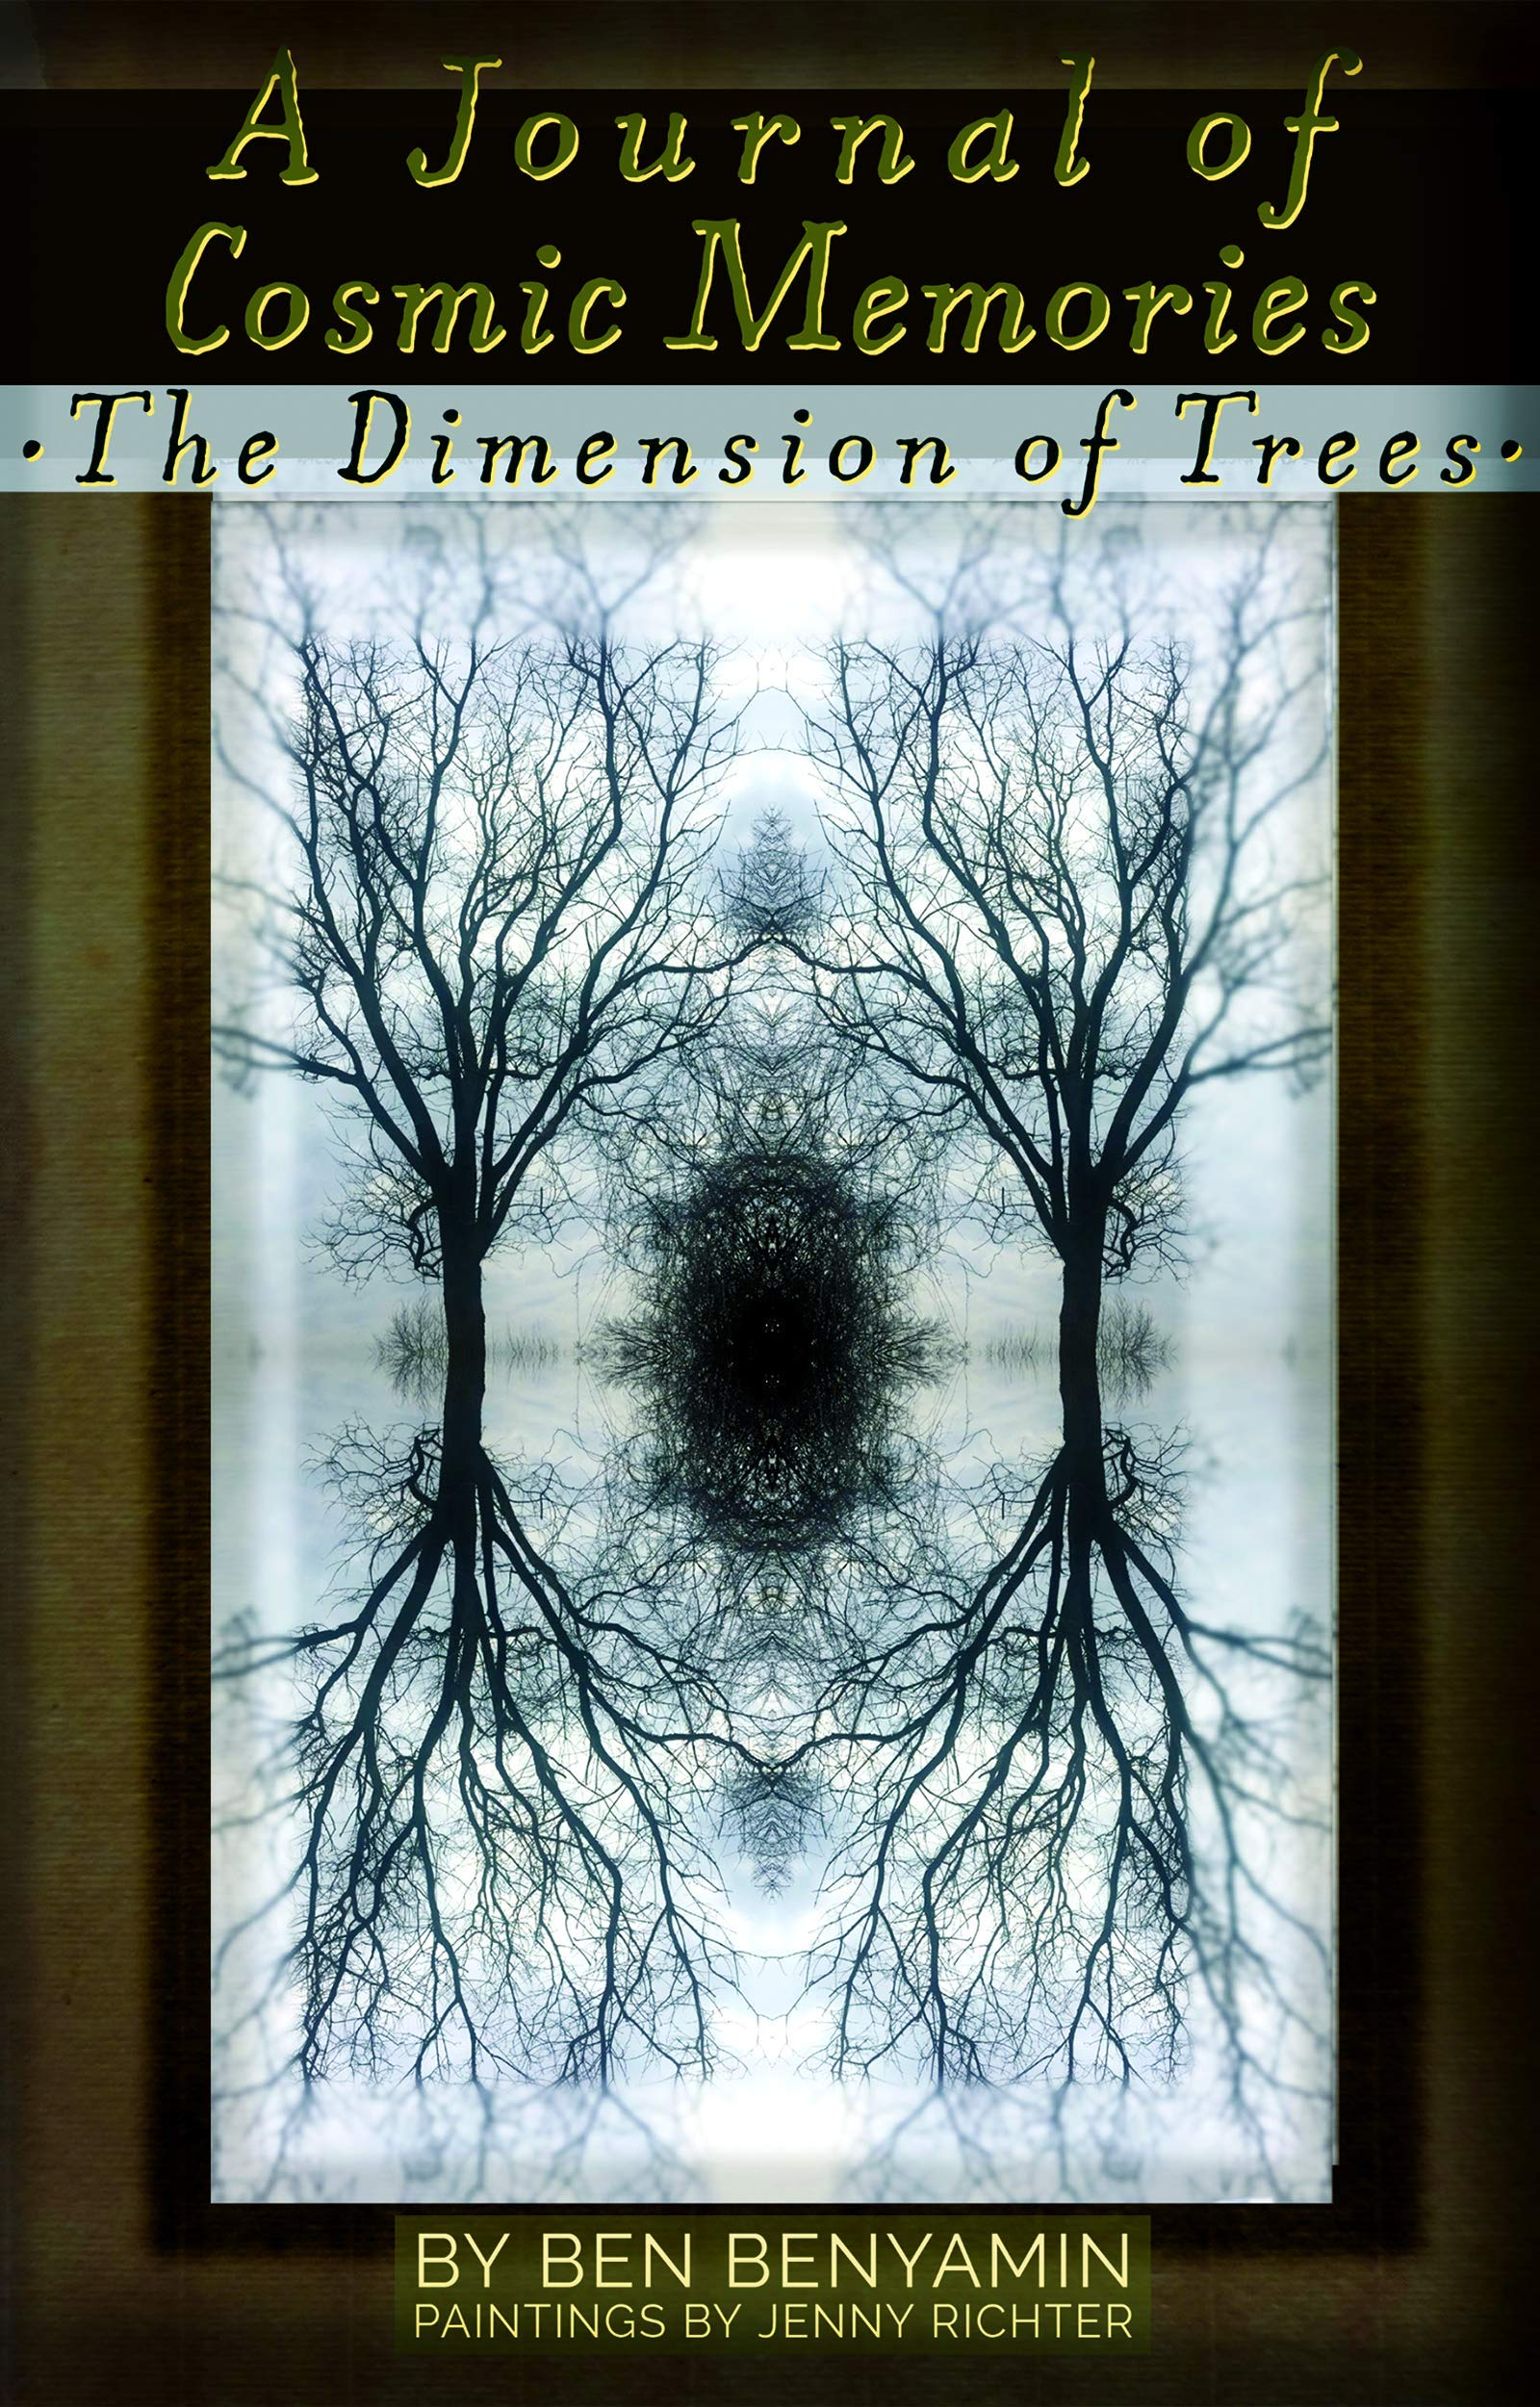 A Journal of Cosmic Memories: The Dimension of Trees